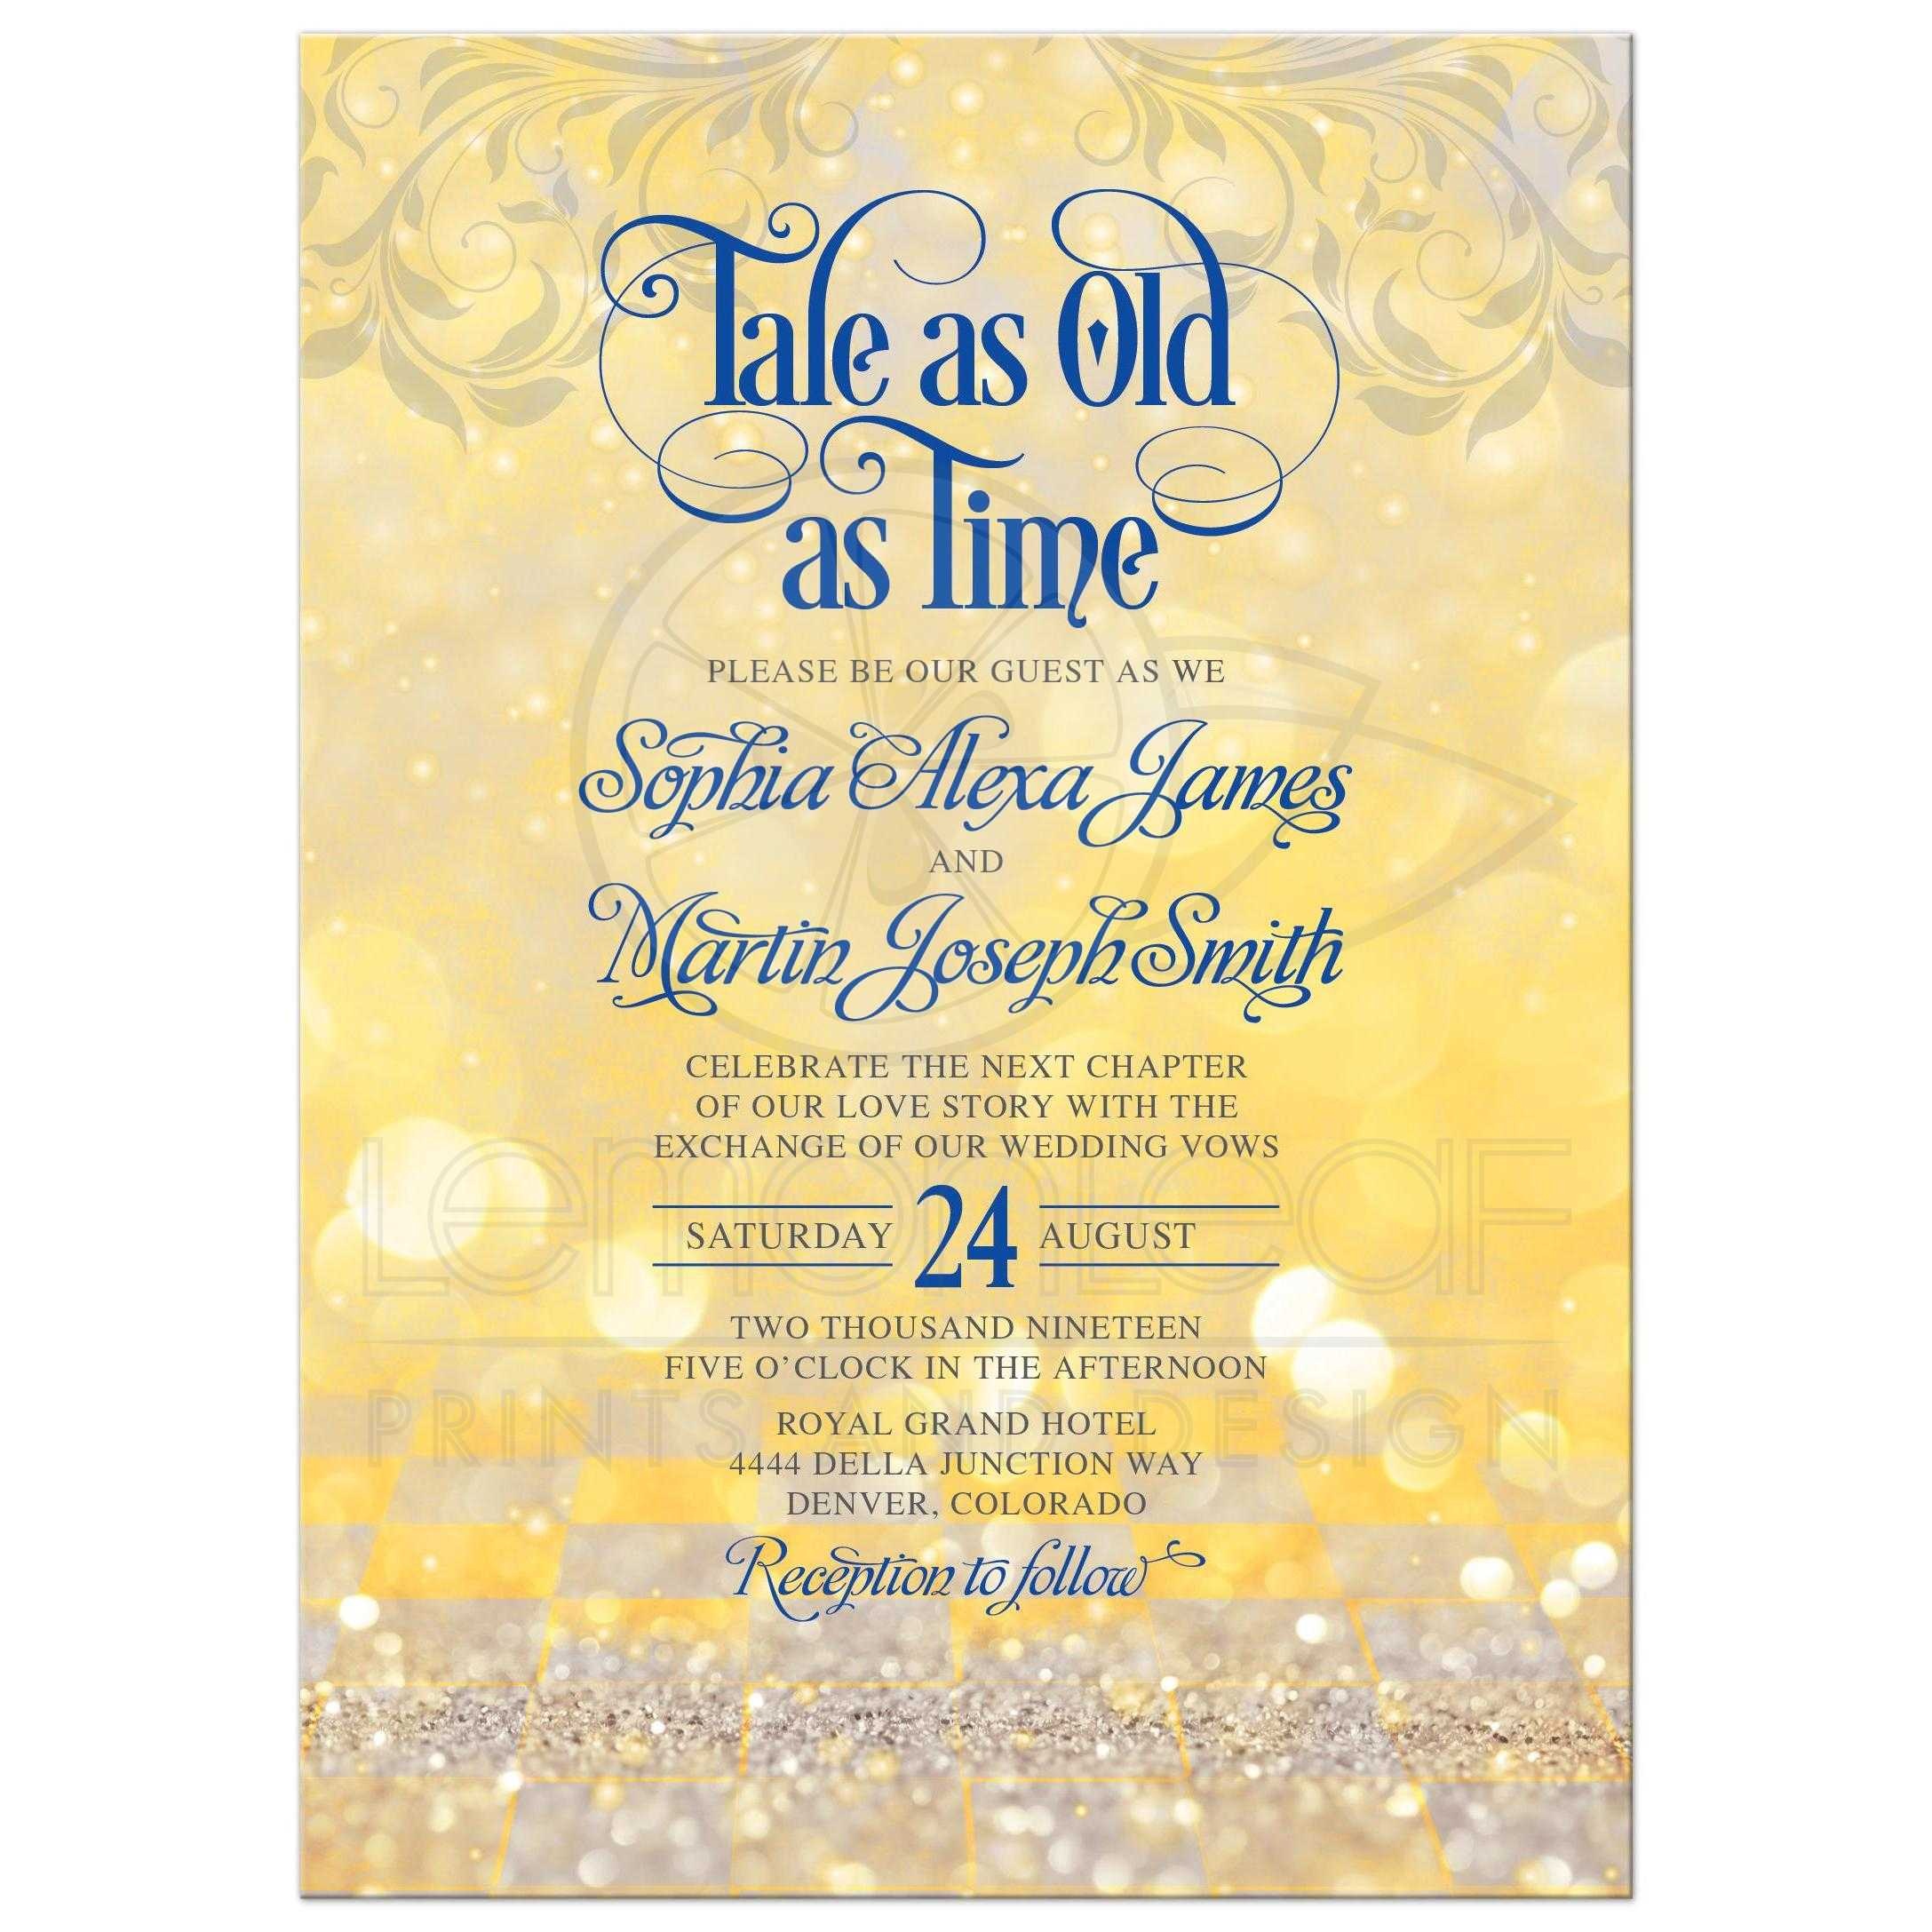 Real Fairytale Weddings Silver Spring Md: Fairytale Tale As Old As Time Wedding Invitation Royal